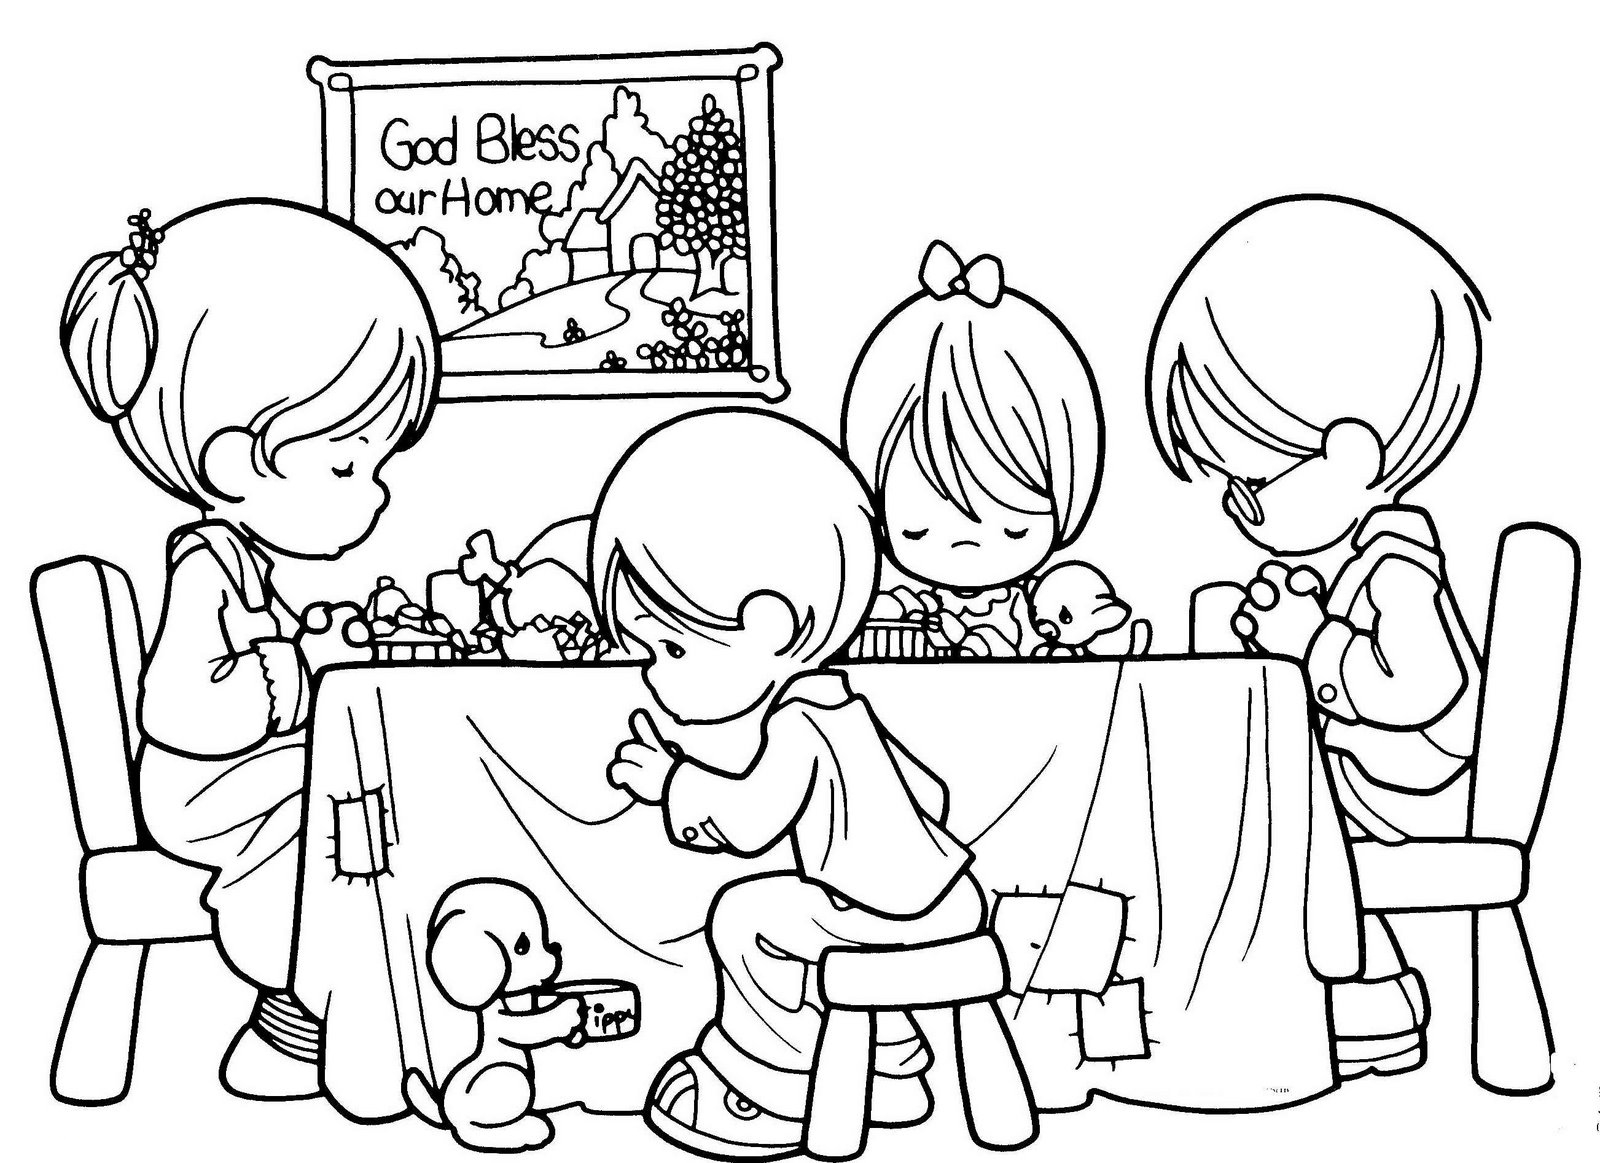 Free coloring pages christian - Download Free Christian Coloring Pages